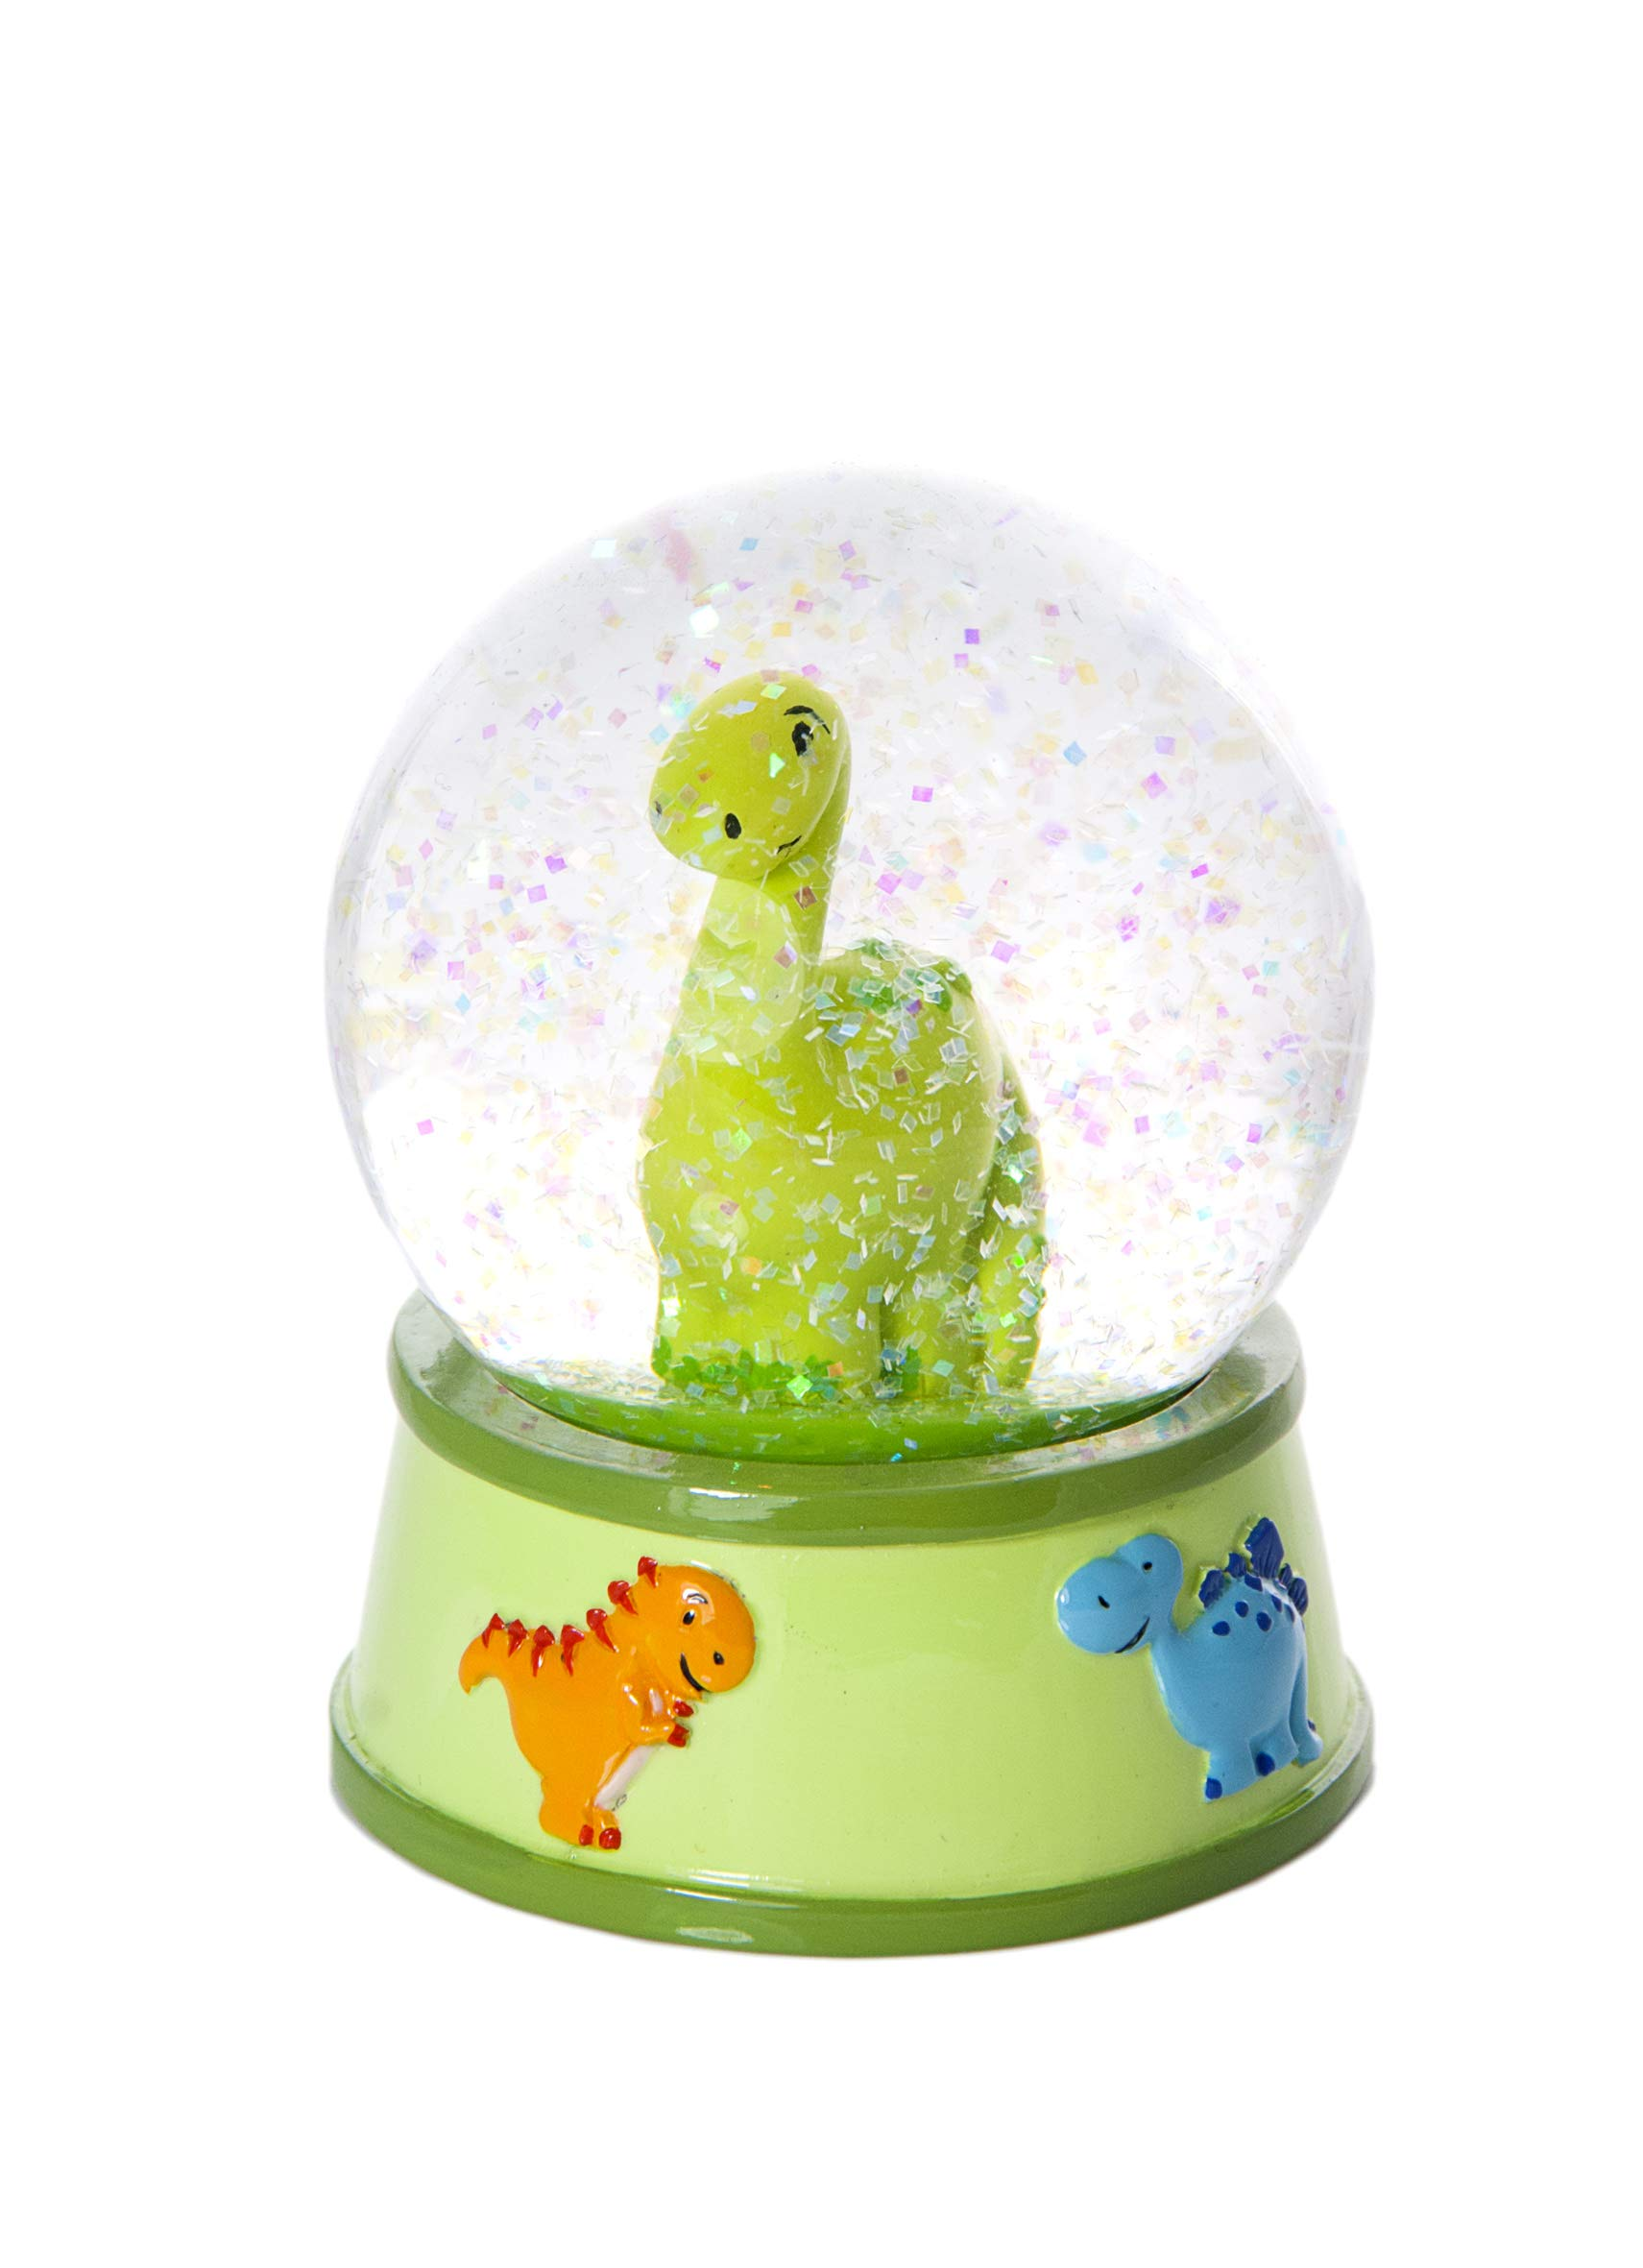 Mousehouse Gifts Dinosaur Snow Globe Gift Present for Boys and Girls